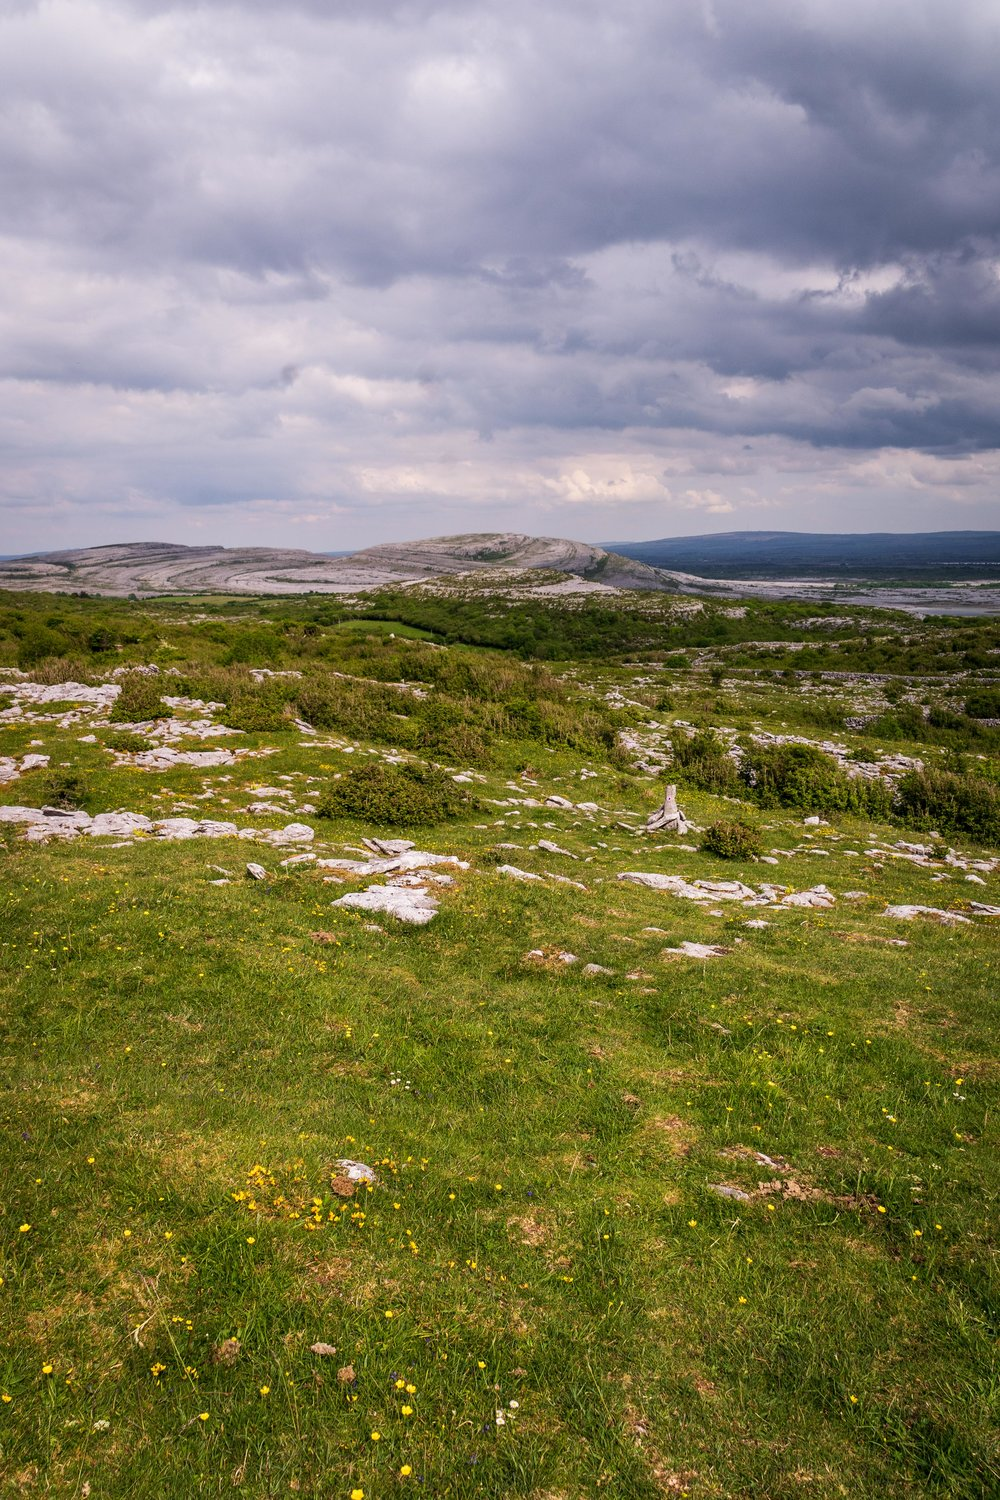 #Spring is the best time to see #wildflowers bloom in the Burren #Ireland   all the ways you wander   #nature #travel